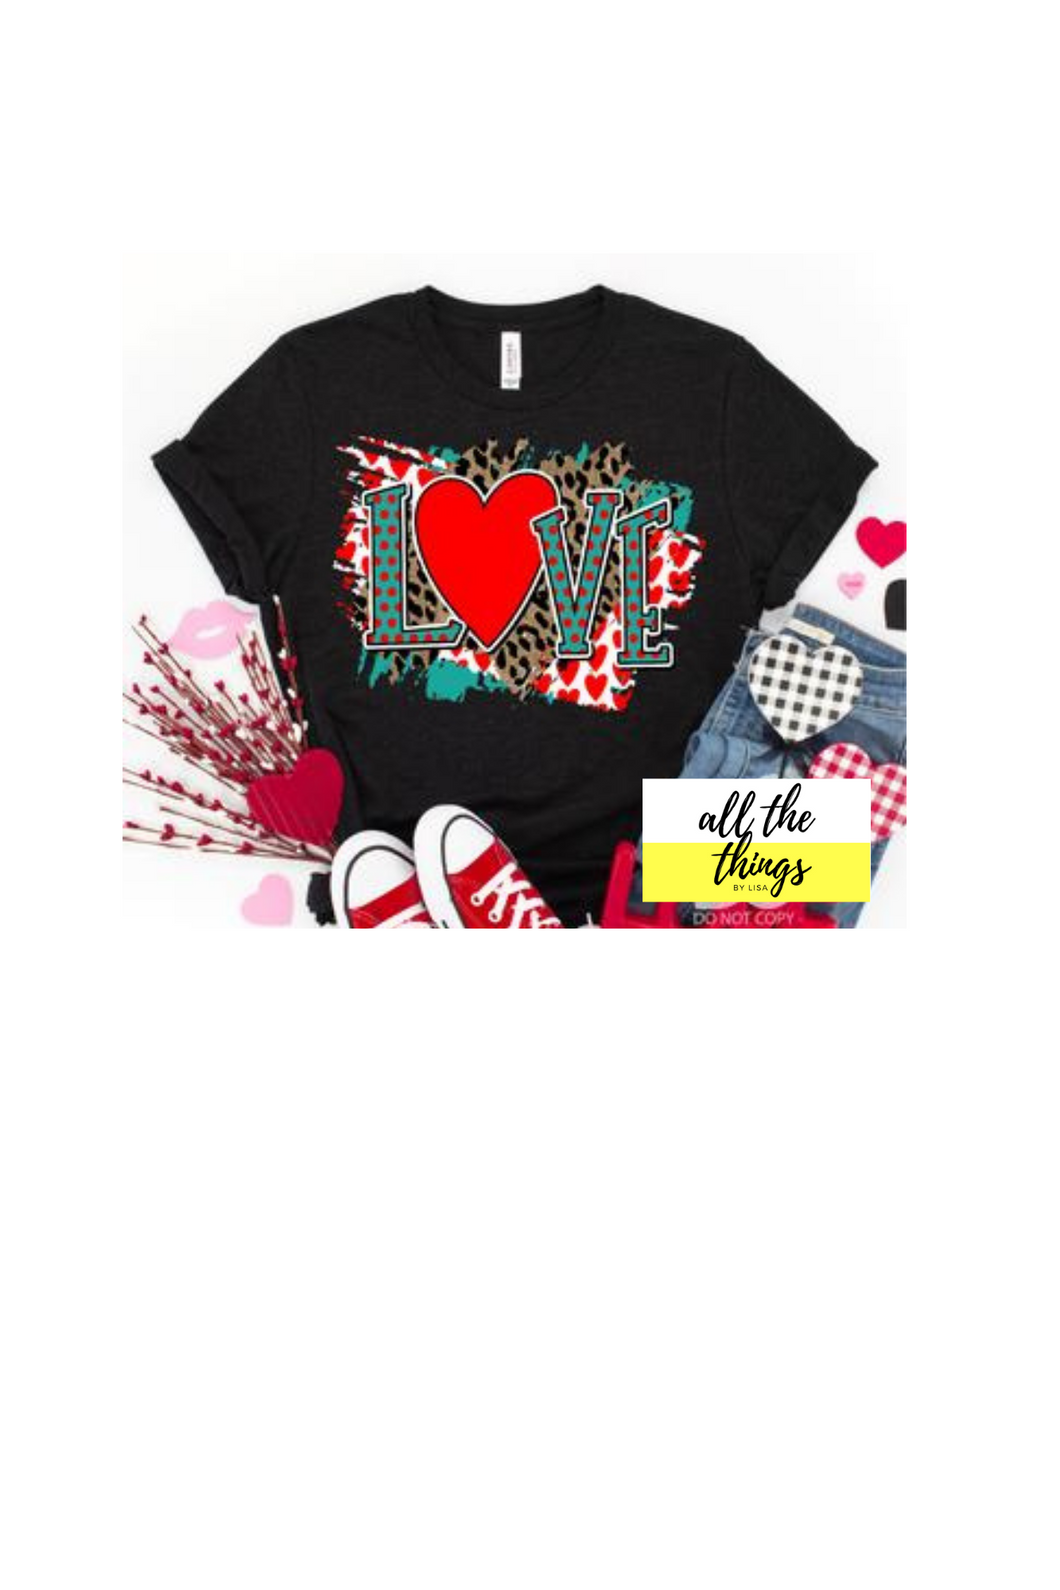 Teal and Red Love tee